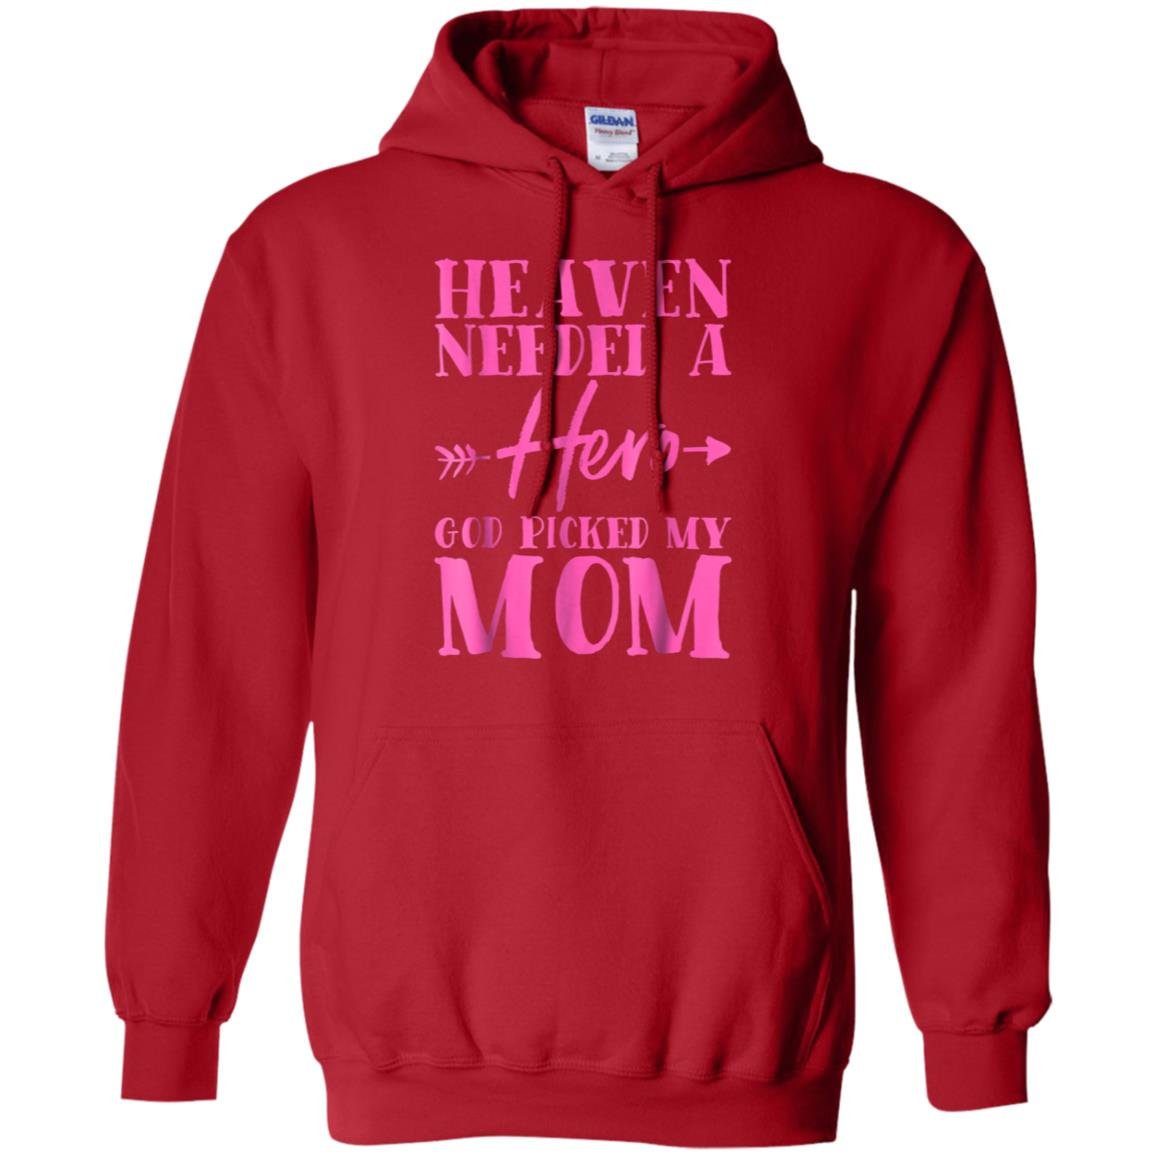 968bb85e Awesome mom heaven needed hero breast cancer awareness gift t shirt ...